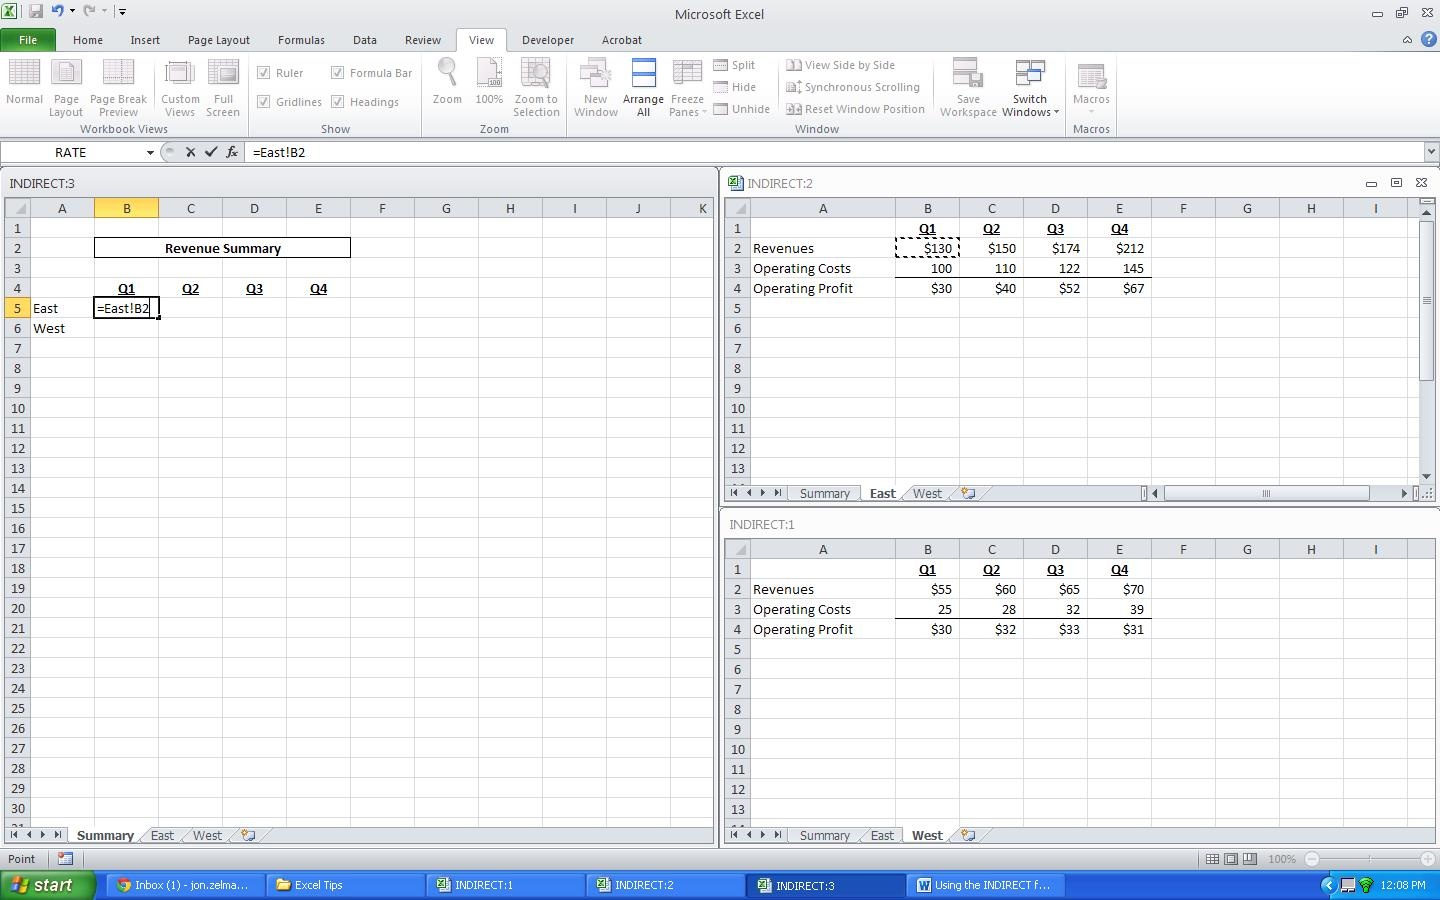 How To Use The Indirect Function In Excel